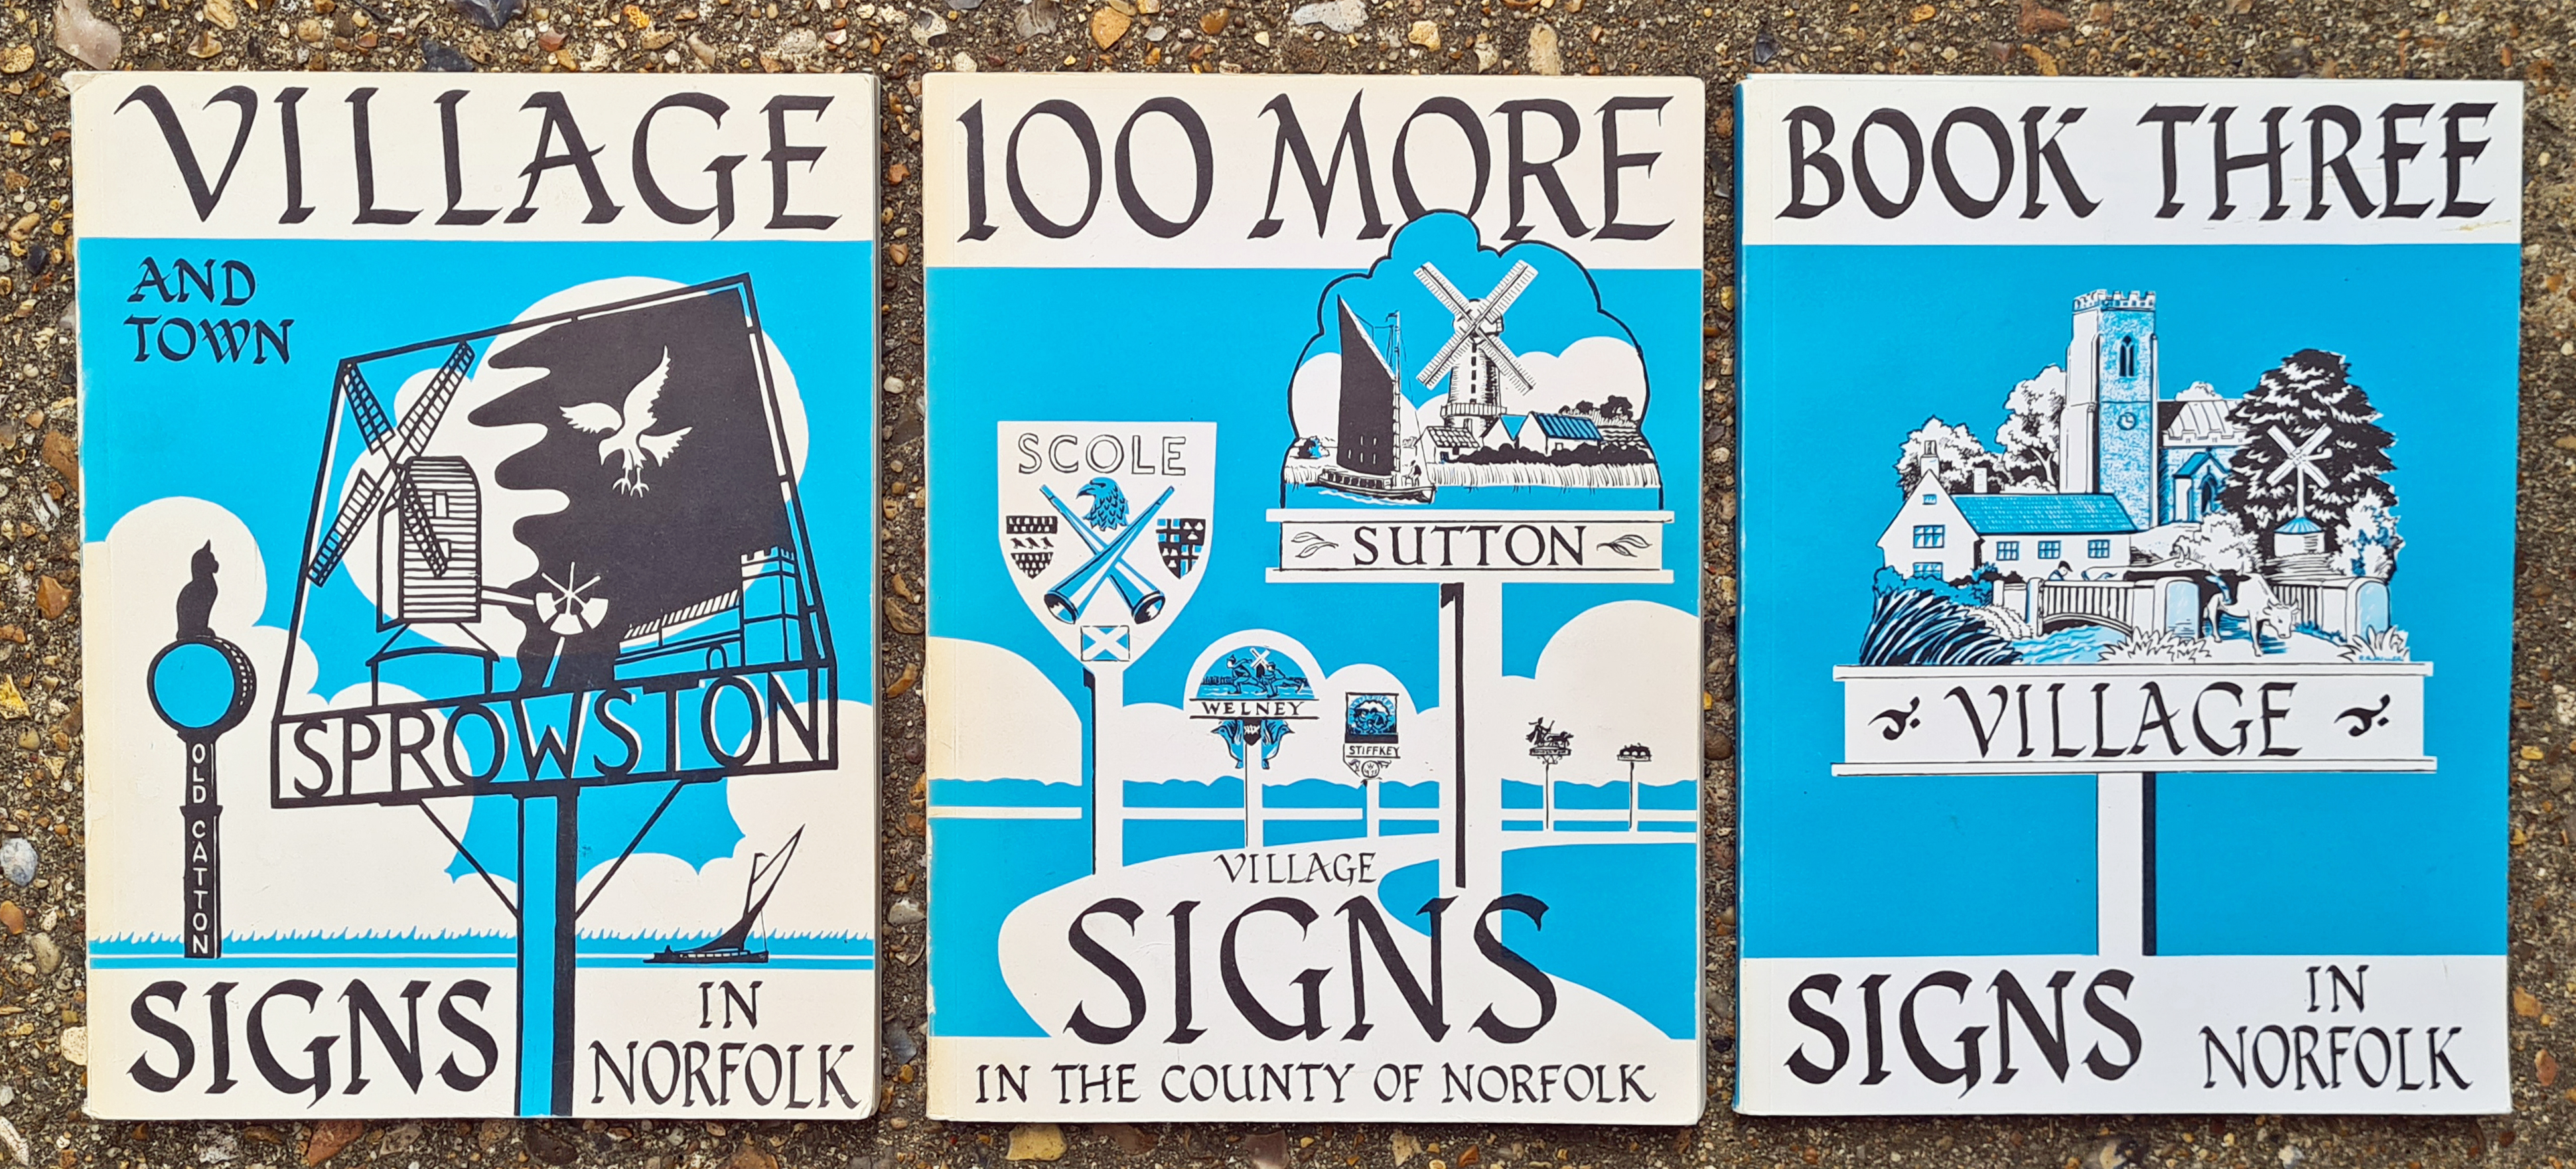 The first books to cover the subject of Village Signs was produced by acknowledged experts on the subject, Francis Procter and Philippa Miller. First printed in 1973, 1979 and 1983, and reprinted many times since, these books not only led the way but showed how a subject should be covered